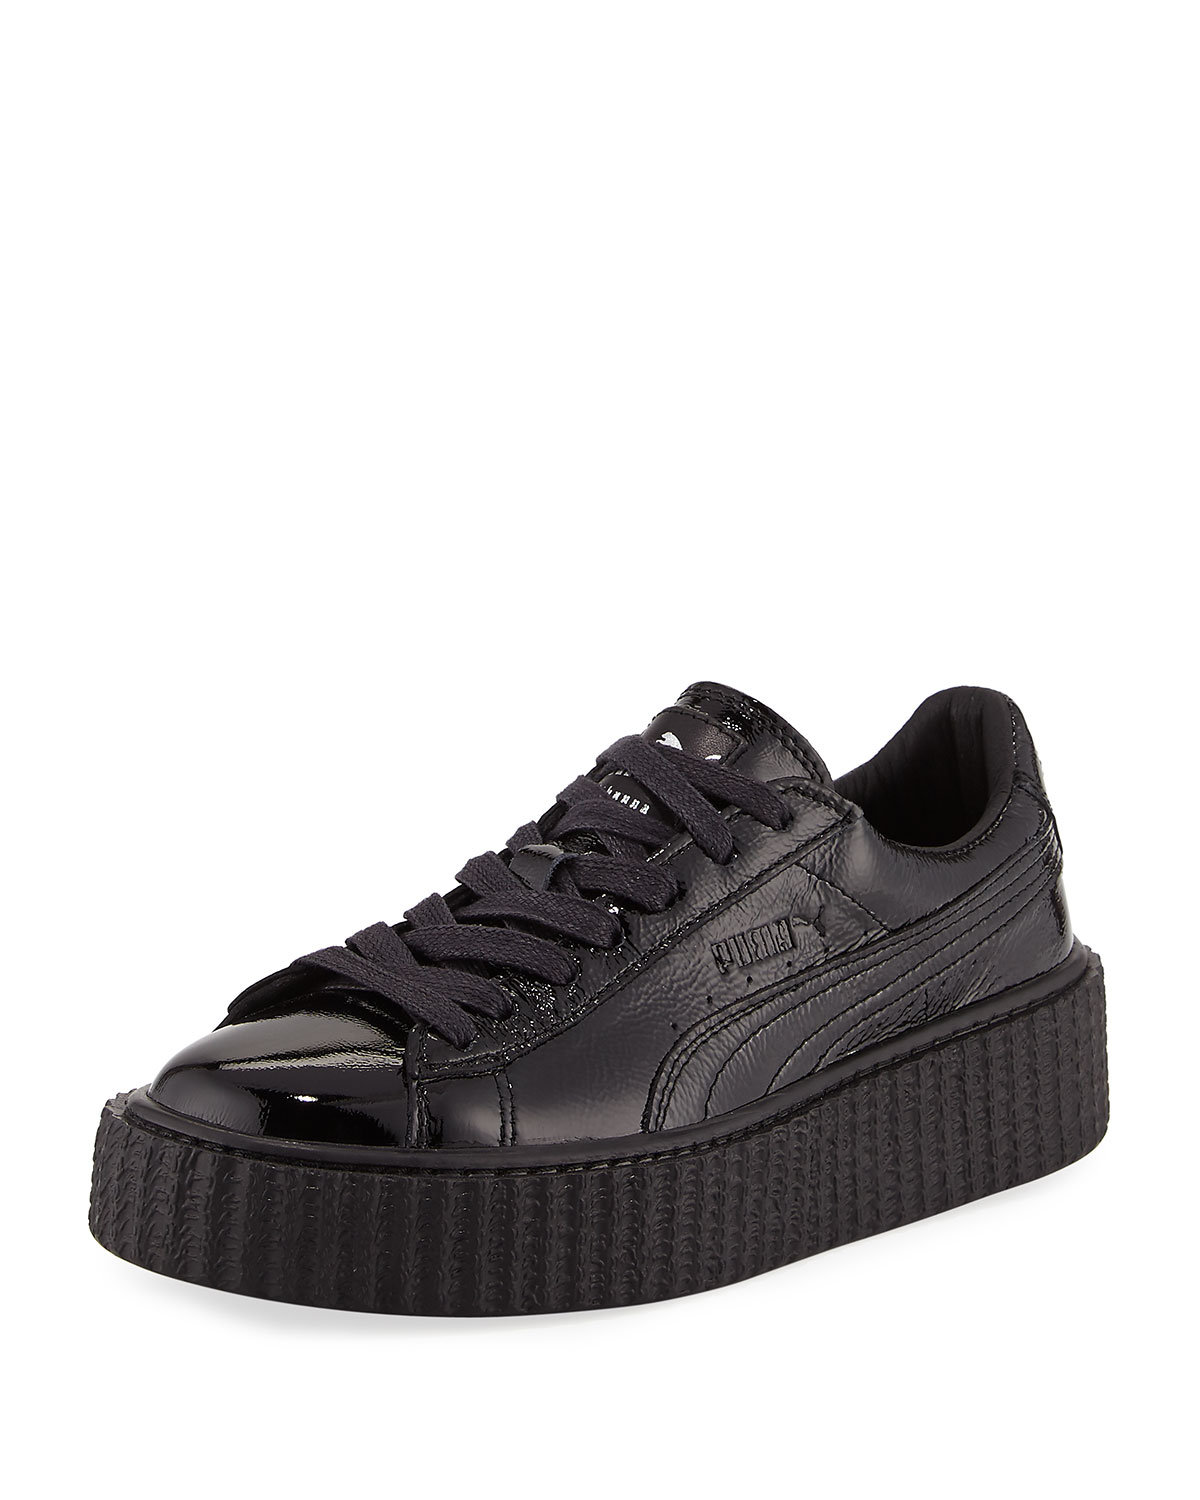 Fenty Puma by Rihanna Creeper Cracked Patent Leather Sneaker 3b538e8dd